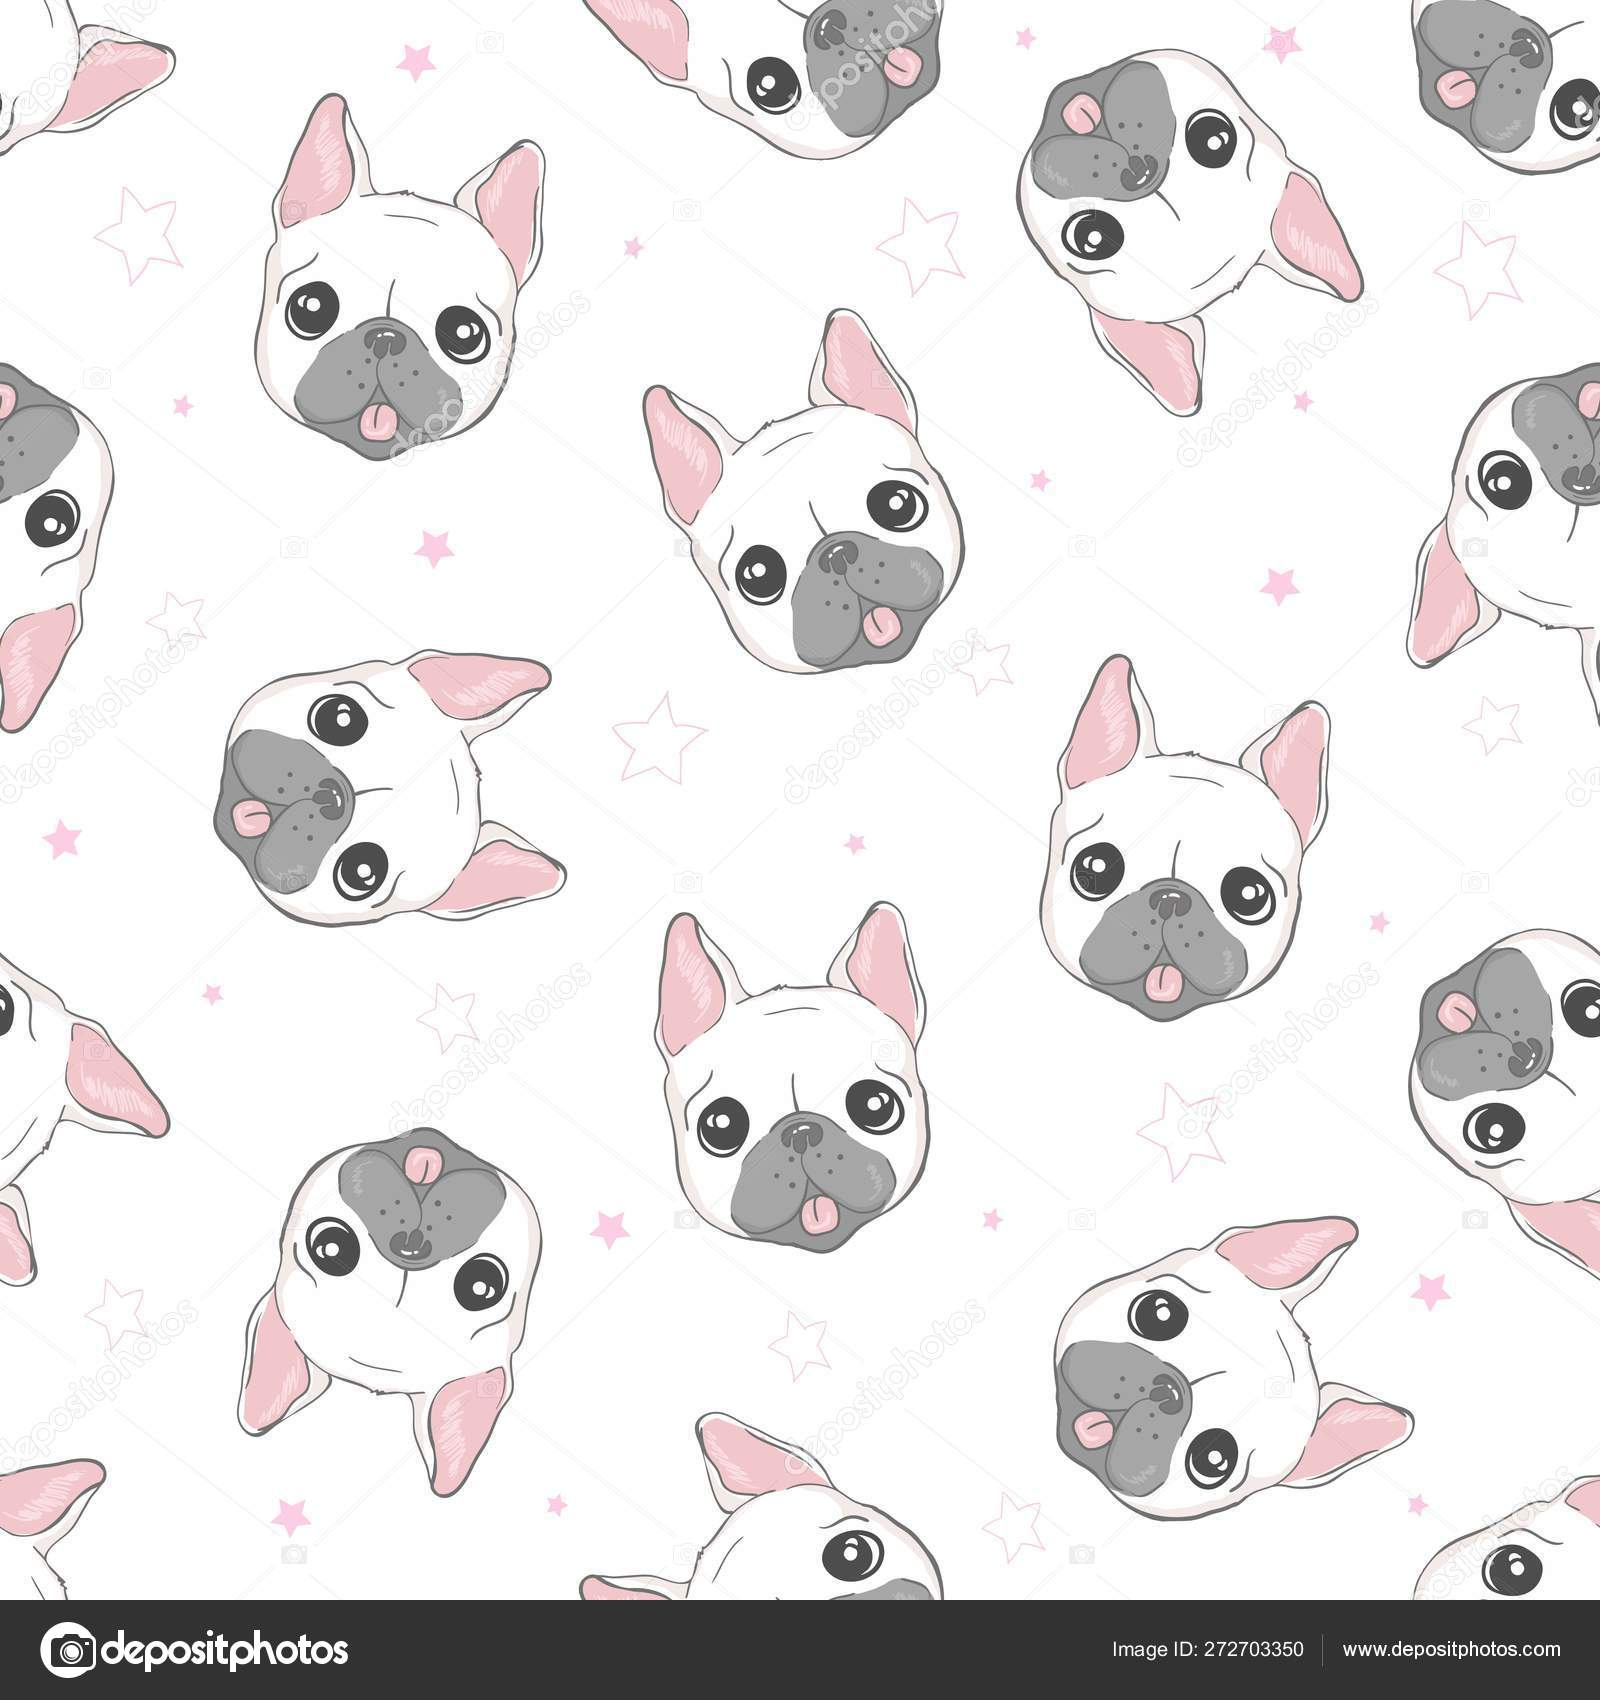 Dog Seamless Pattern French Bulldog Paw Vector Repeat Background Tile Cartoon Wallpaper Isolated Black Stock Vector C 89534886399 Mail Ru 272703350